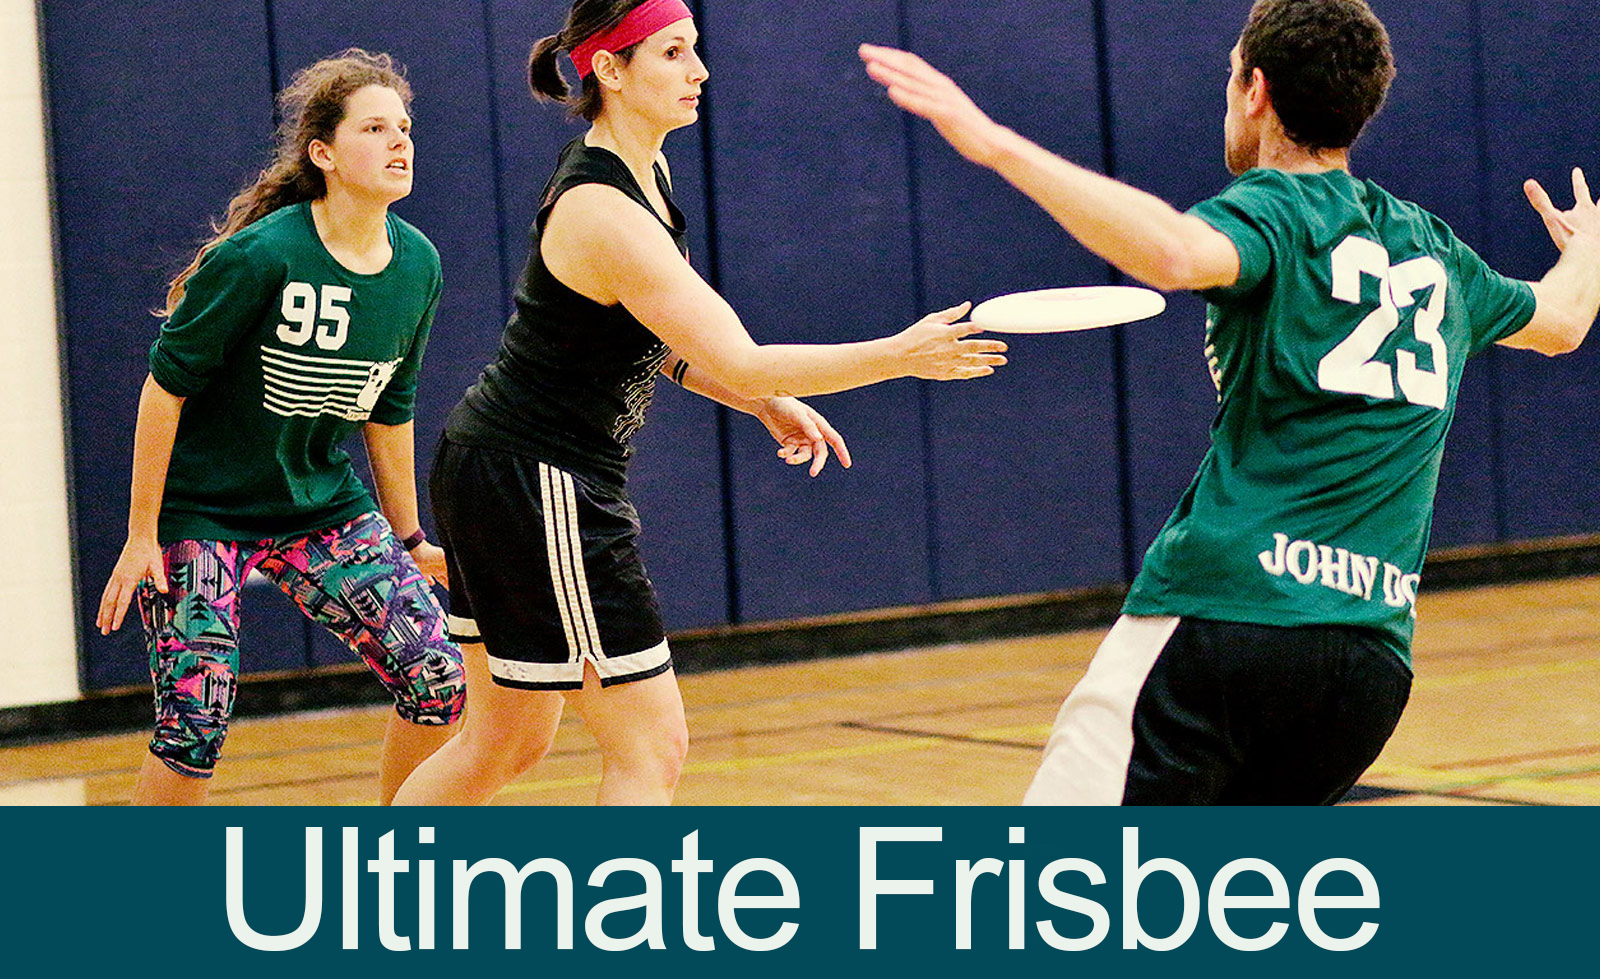 frisbee players